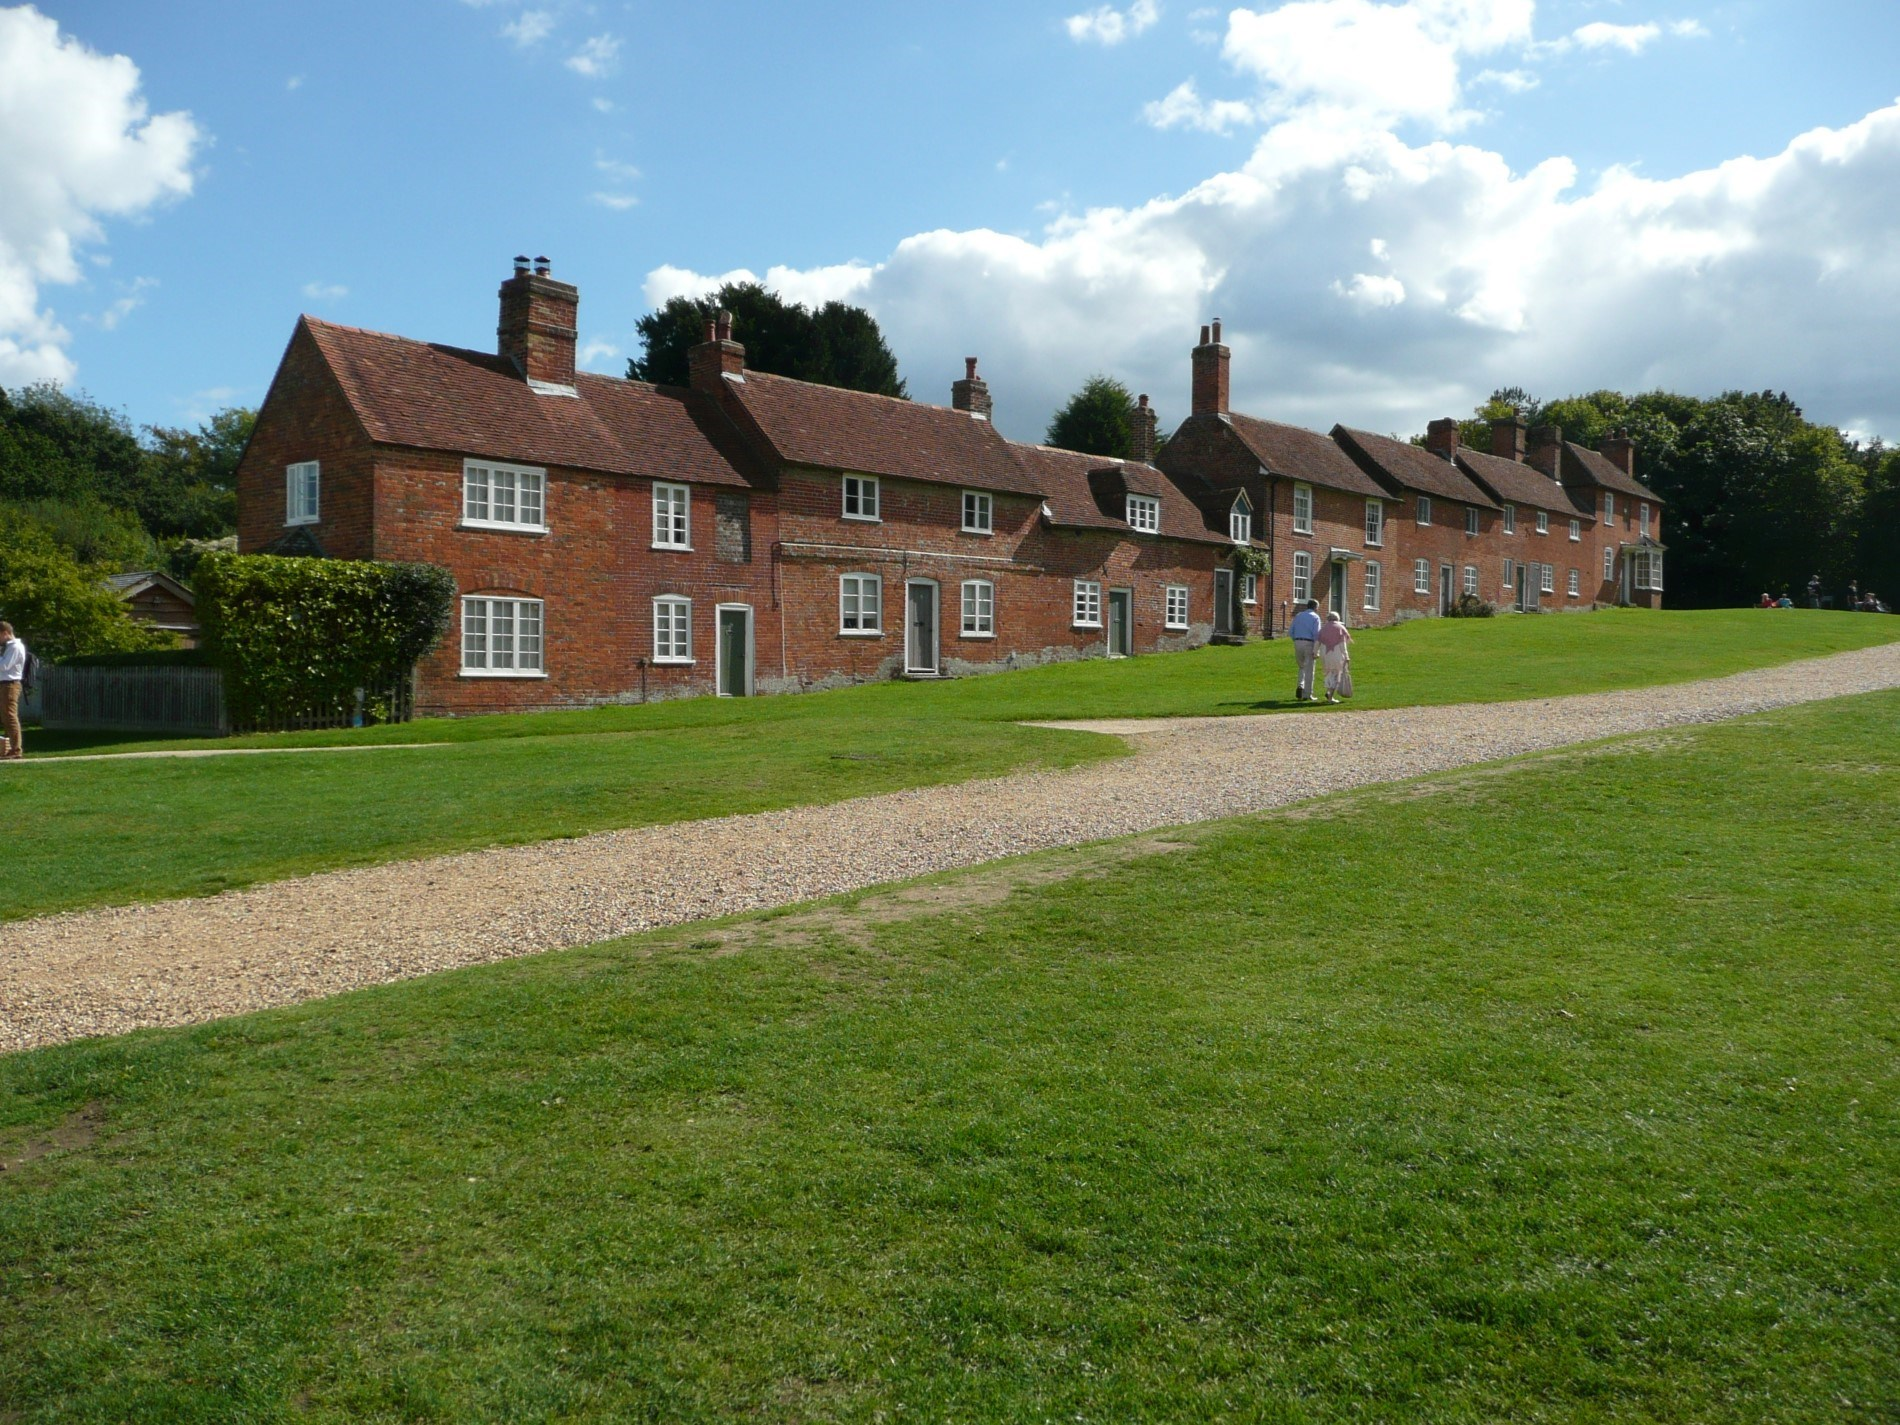 Bucklers Hard close by and worth a visit.